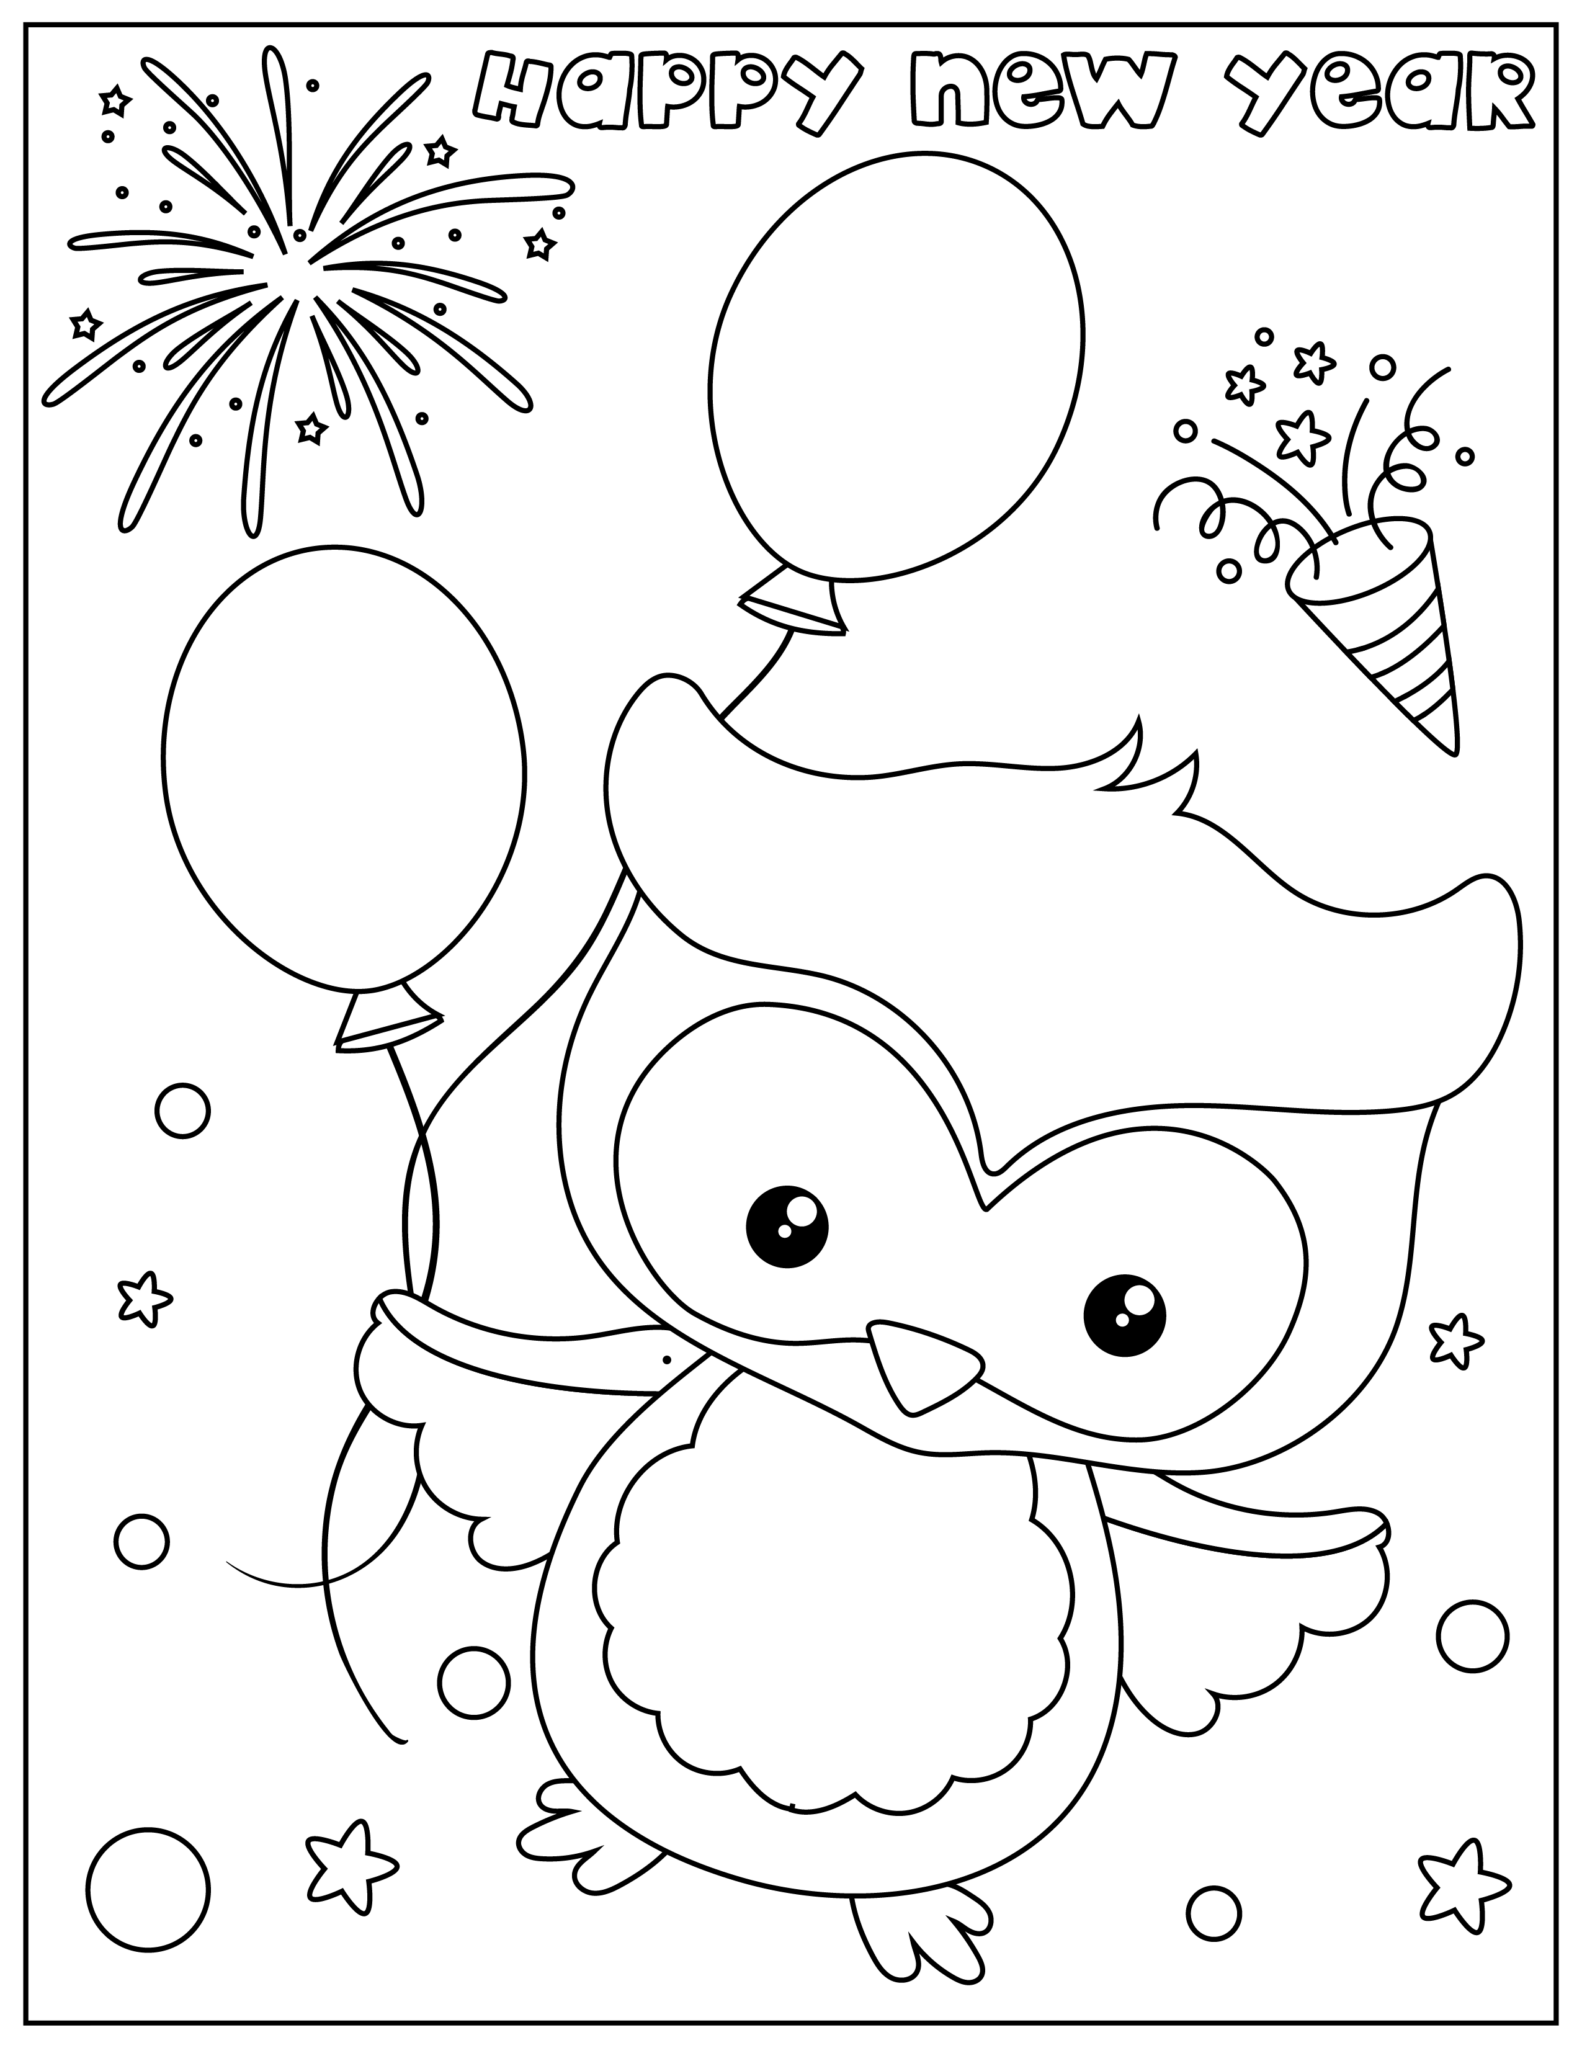 Ring in the New Year With Fun Activity Pages